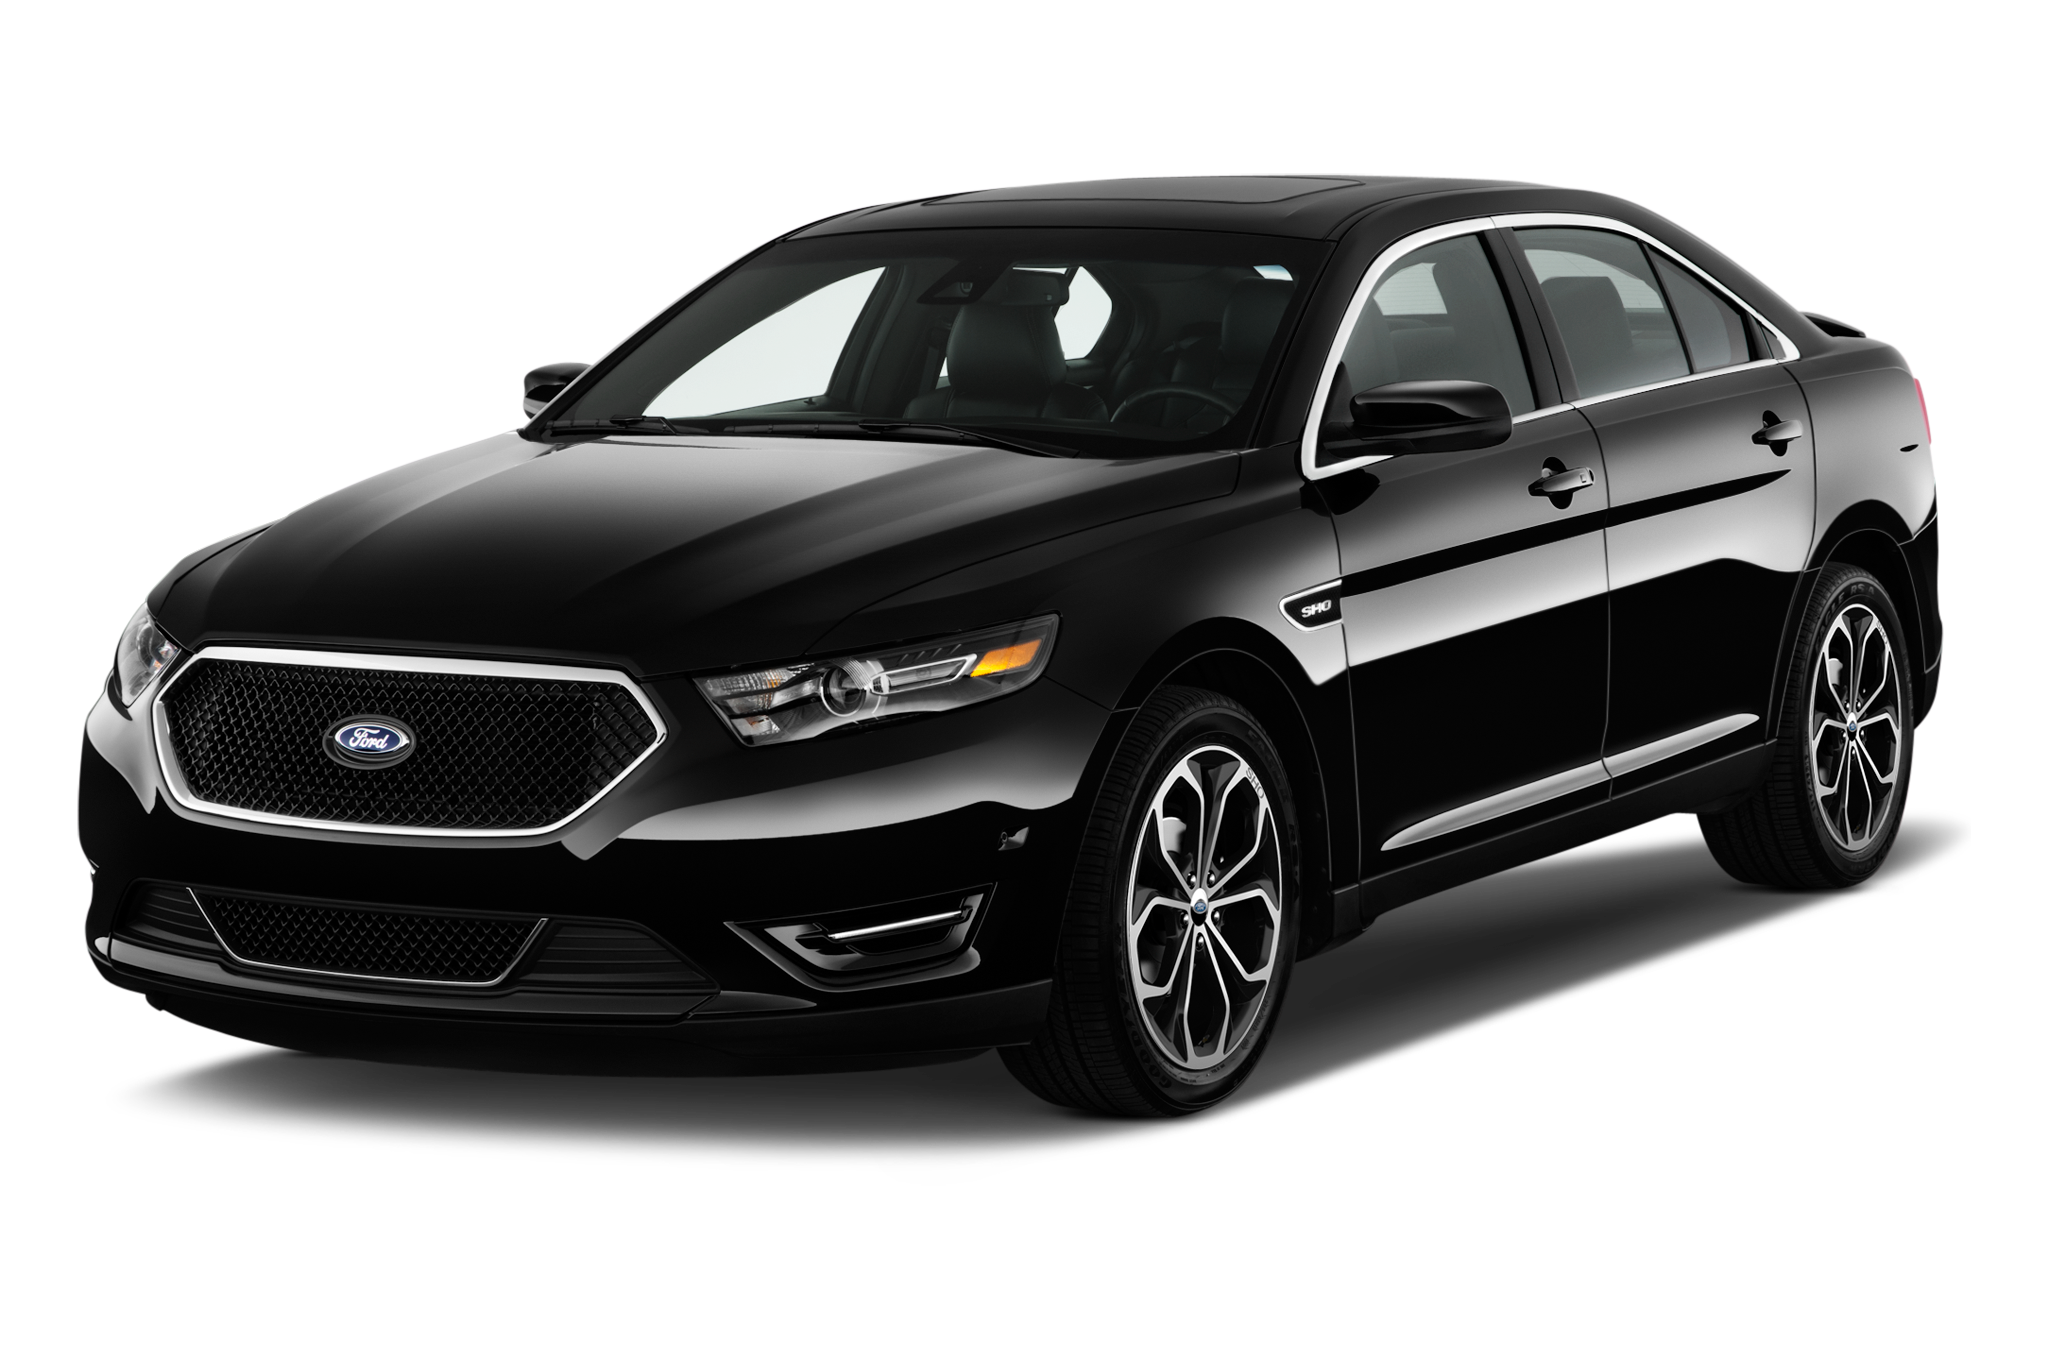 ford taurus sho awd overview msn autos